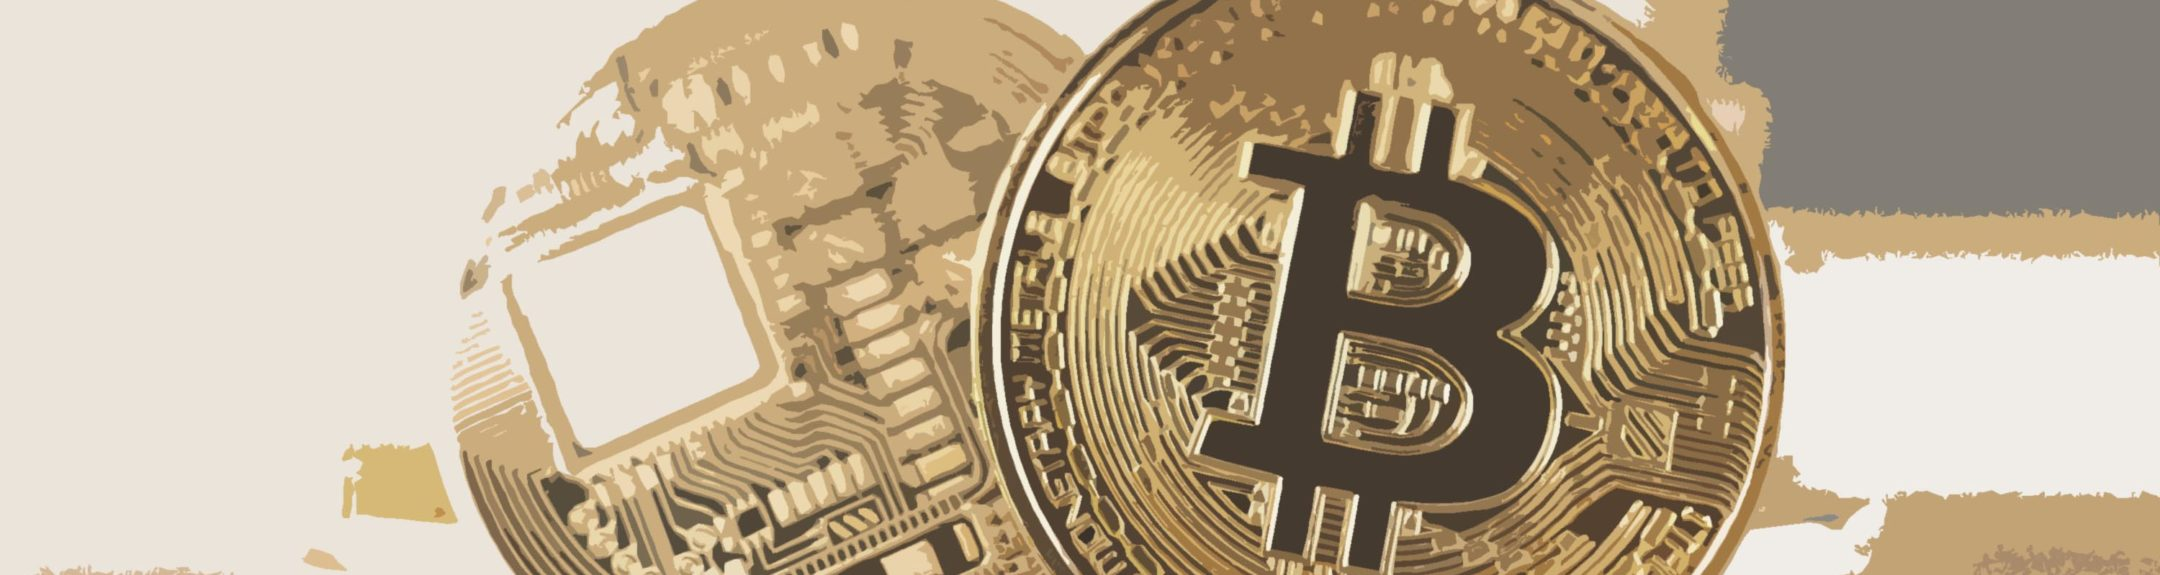 Cryptocurrency including Bitcoin is facing new regulation and regulatory change